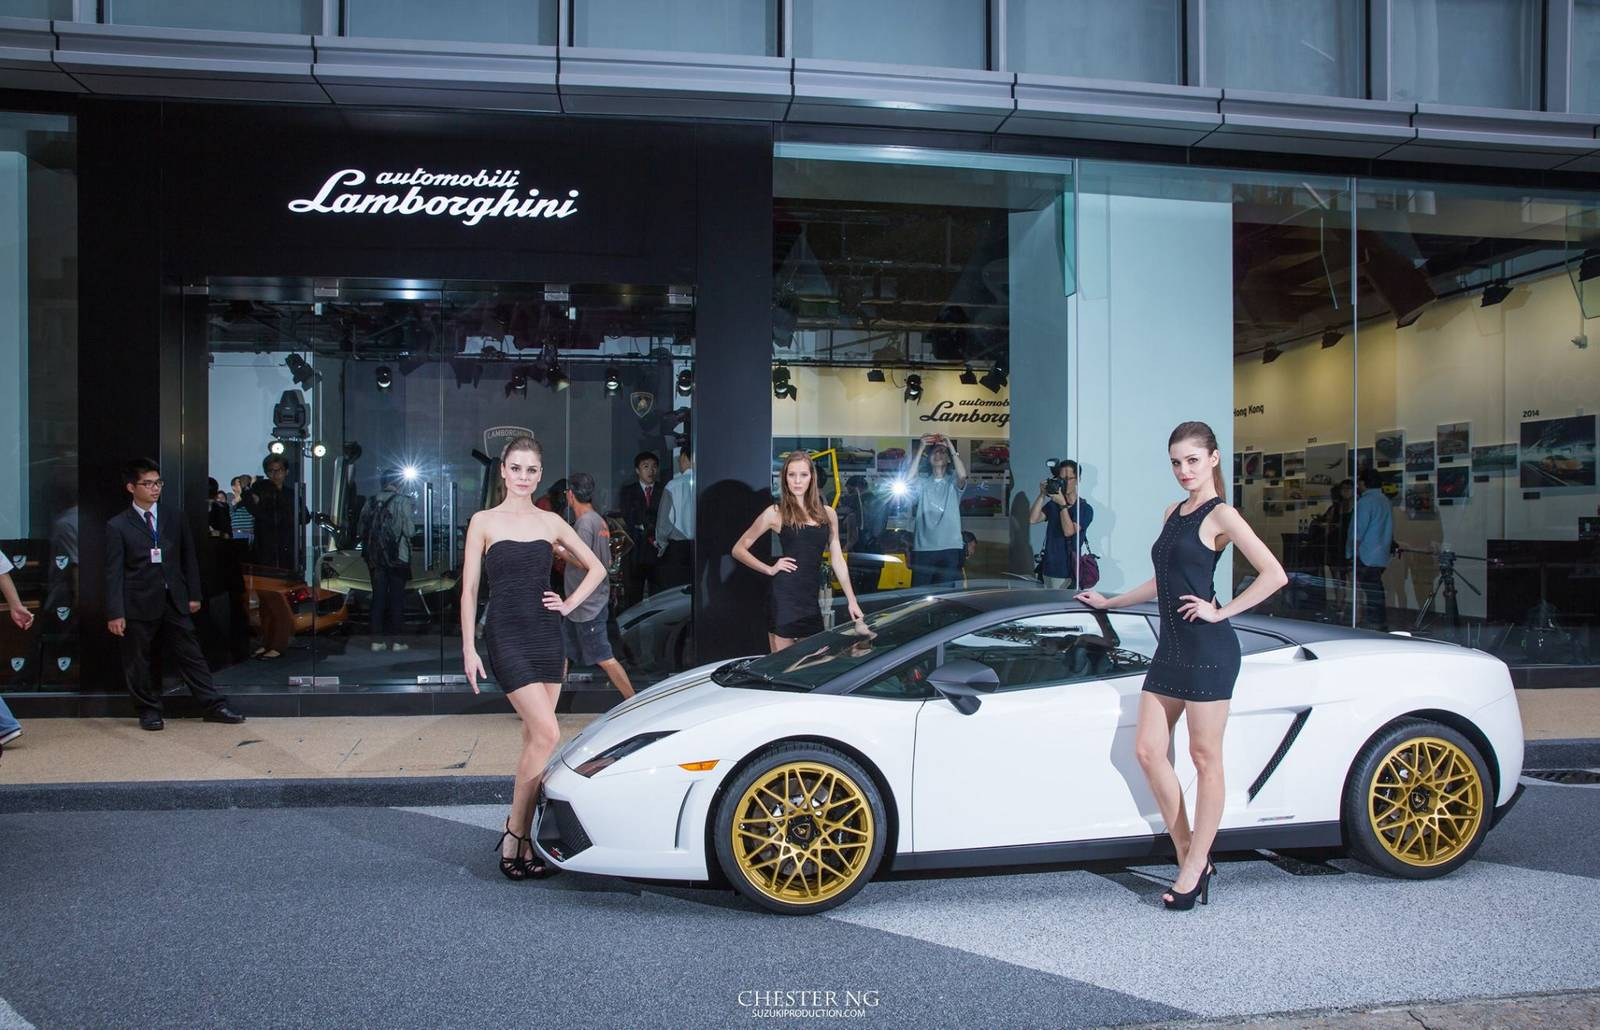 lamborghini hong kong opens first pop up museum in asia pacific gtspirit. Black Bedroom Furniture Sets. Home Design Ideas